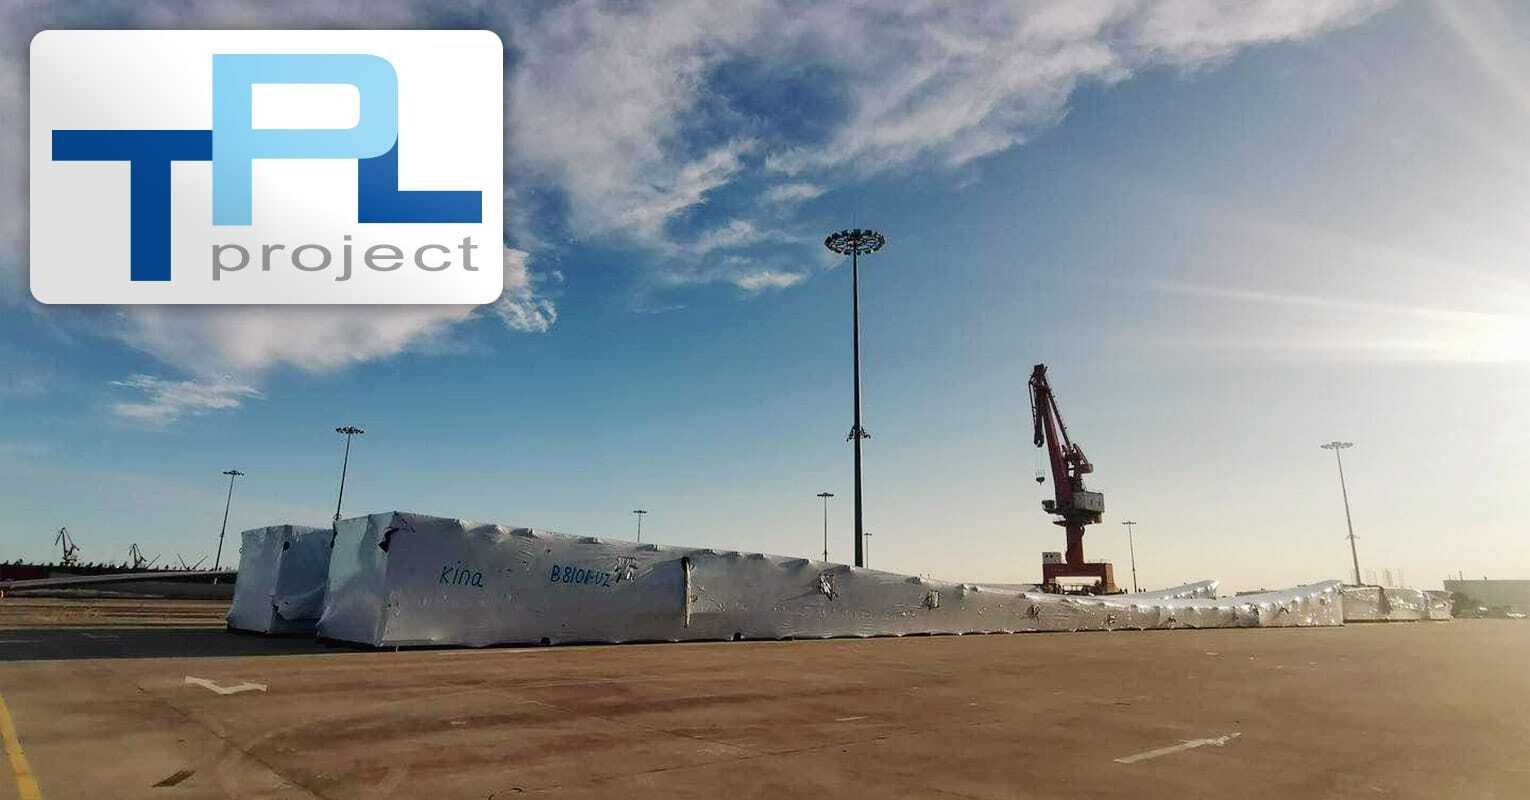 TPL Project Handled a Project Shipment via the Arctic Route